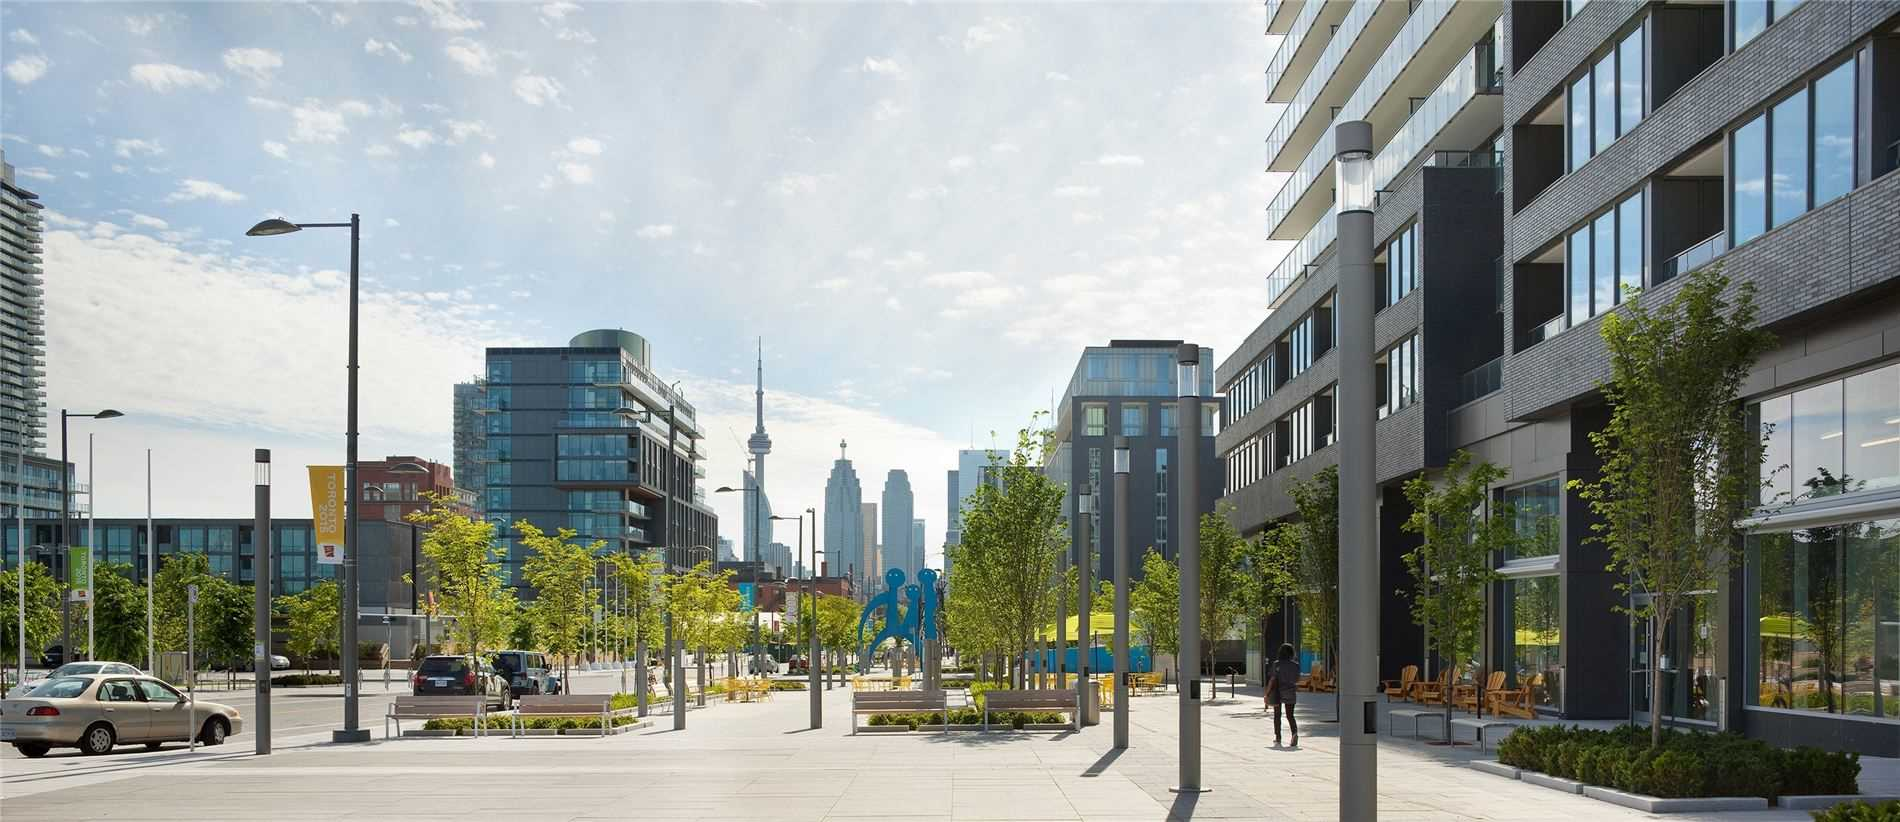 430 Front St 15A, Waterfront Communities C8, Toronto, Ontario M5A1G9, ,Commercial/retail,For Lease,Front,C4879560